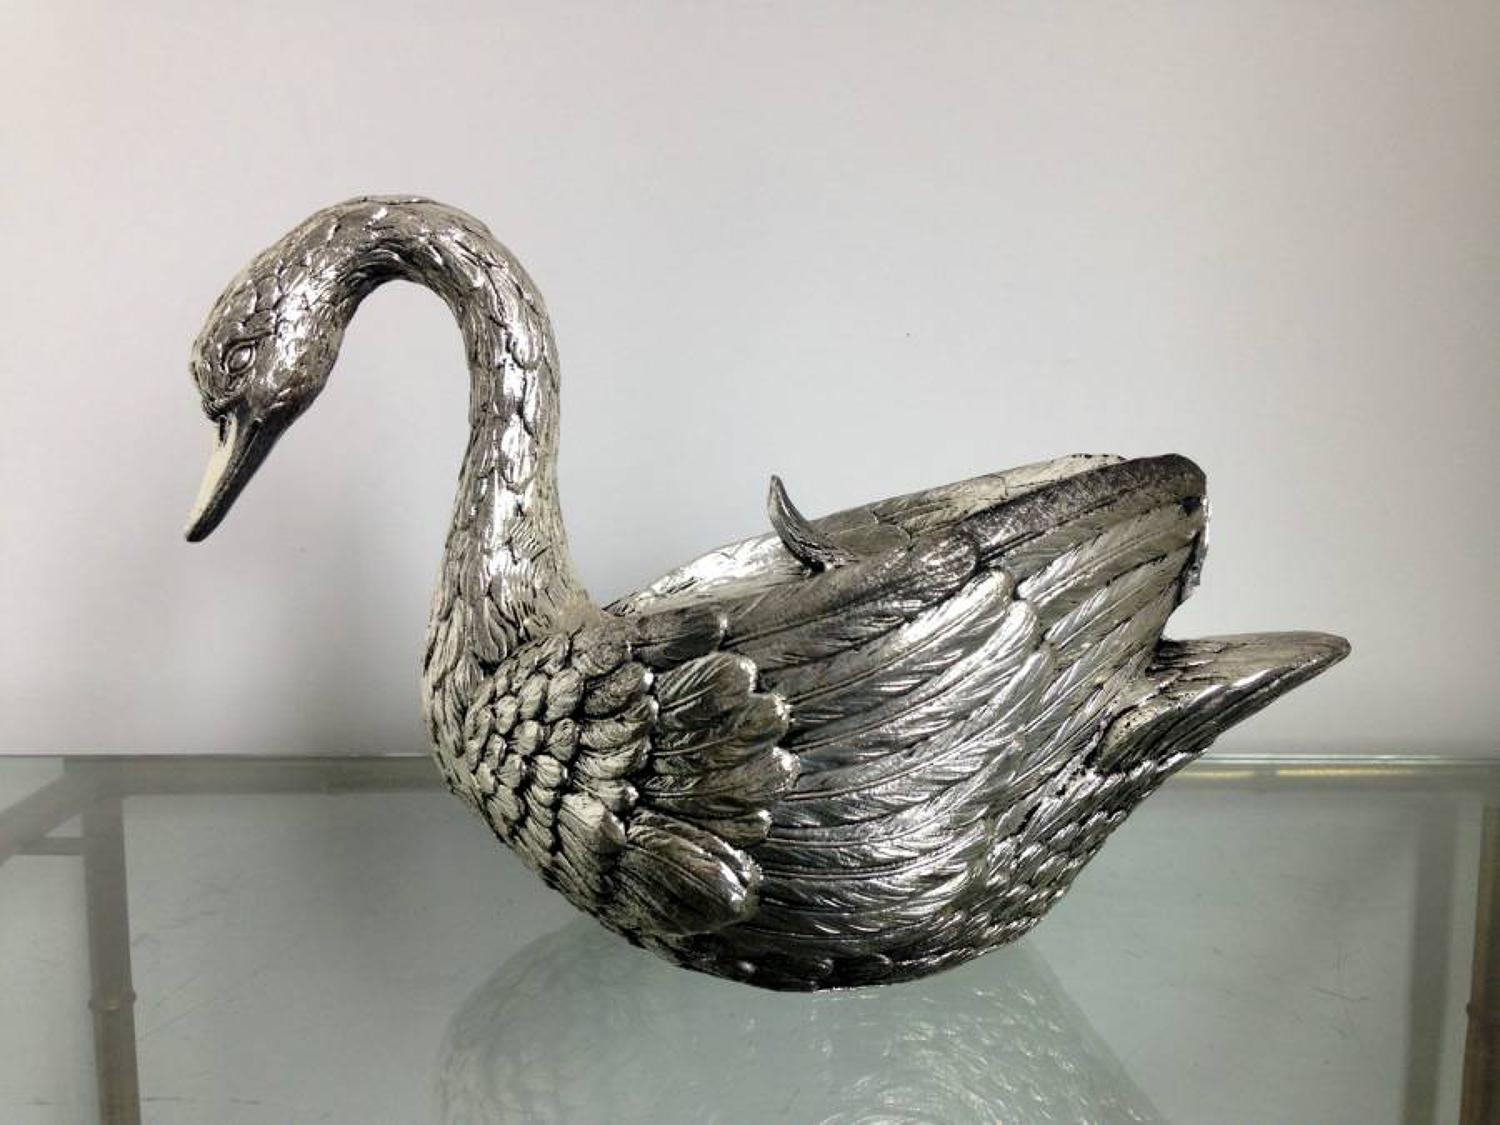 Swan ice bucket by Mauro Manetti